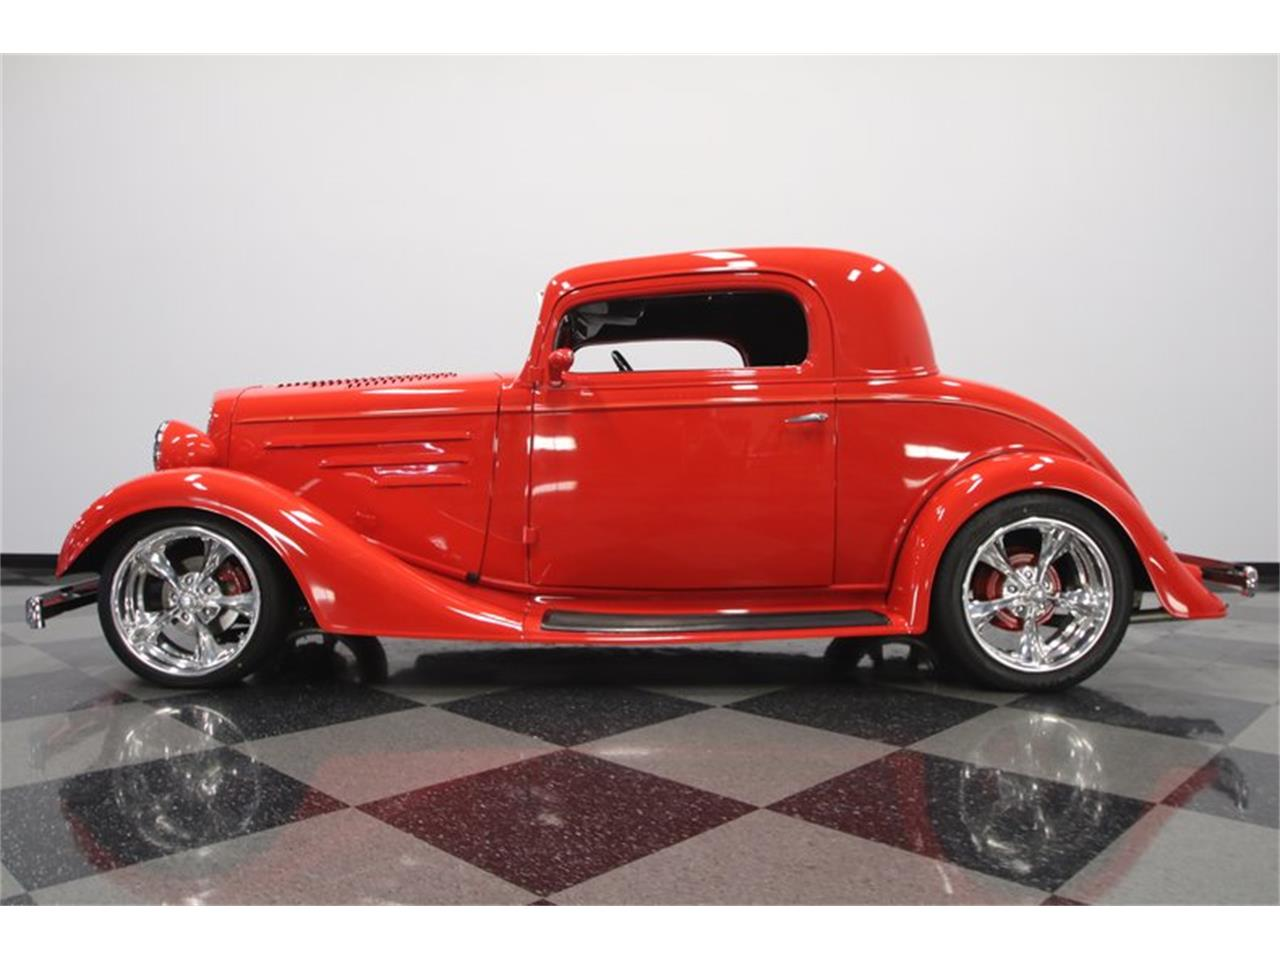 1934 Chevrolet 3-Window Coupe for sale in Lutz, FL – photo 24